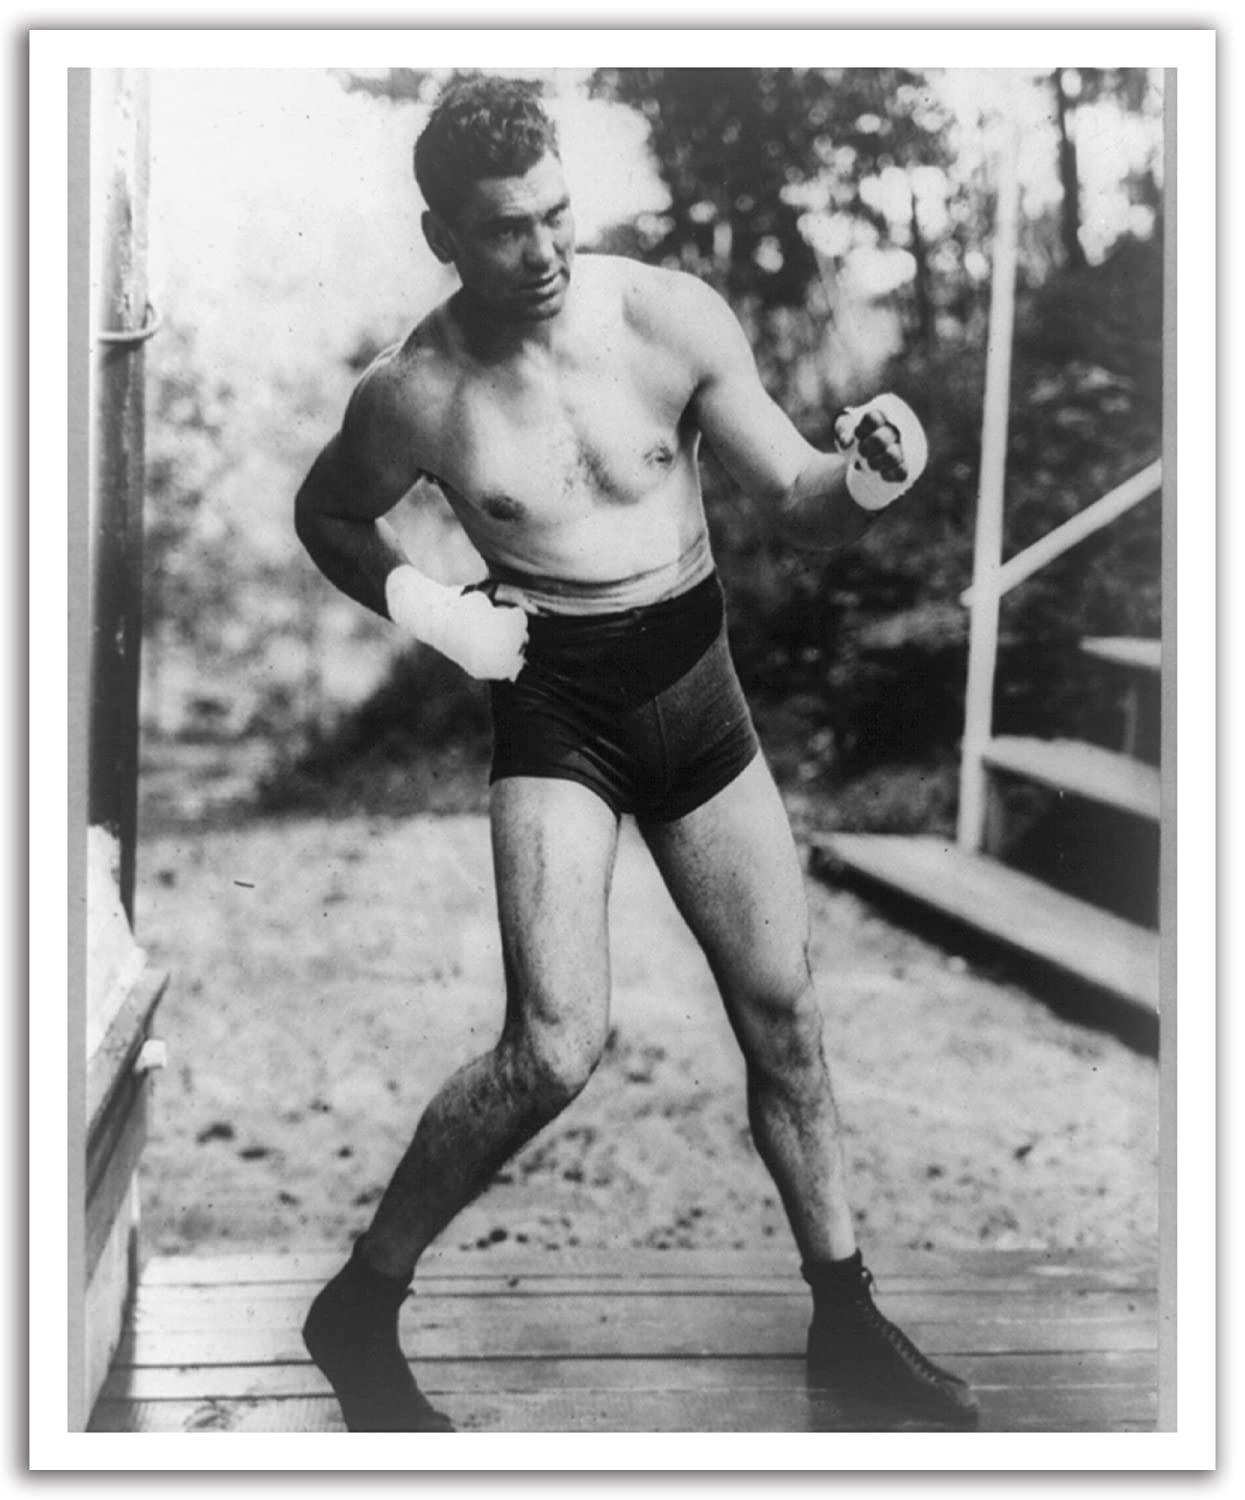 JP London POS2474 U-Strip Peel and Stick Vintage Jack Dempsey Boxing Champ Removable Wall Decal Sticker Mural,  19.75' by 24'